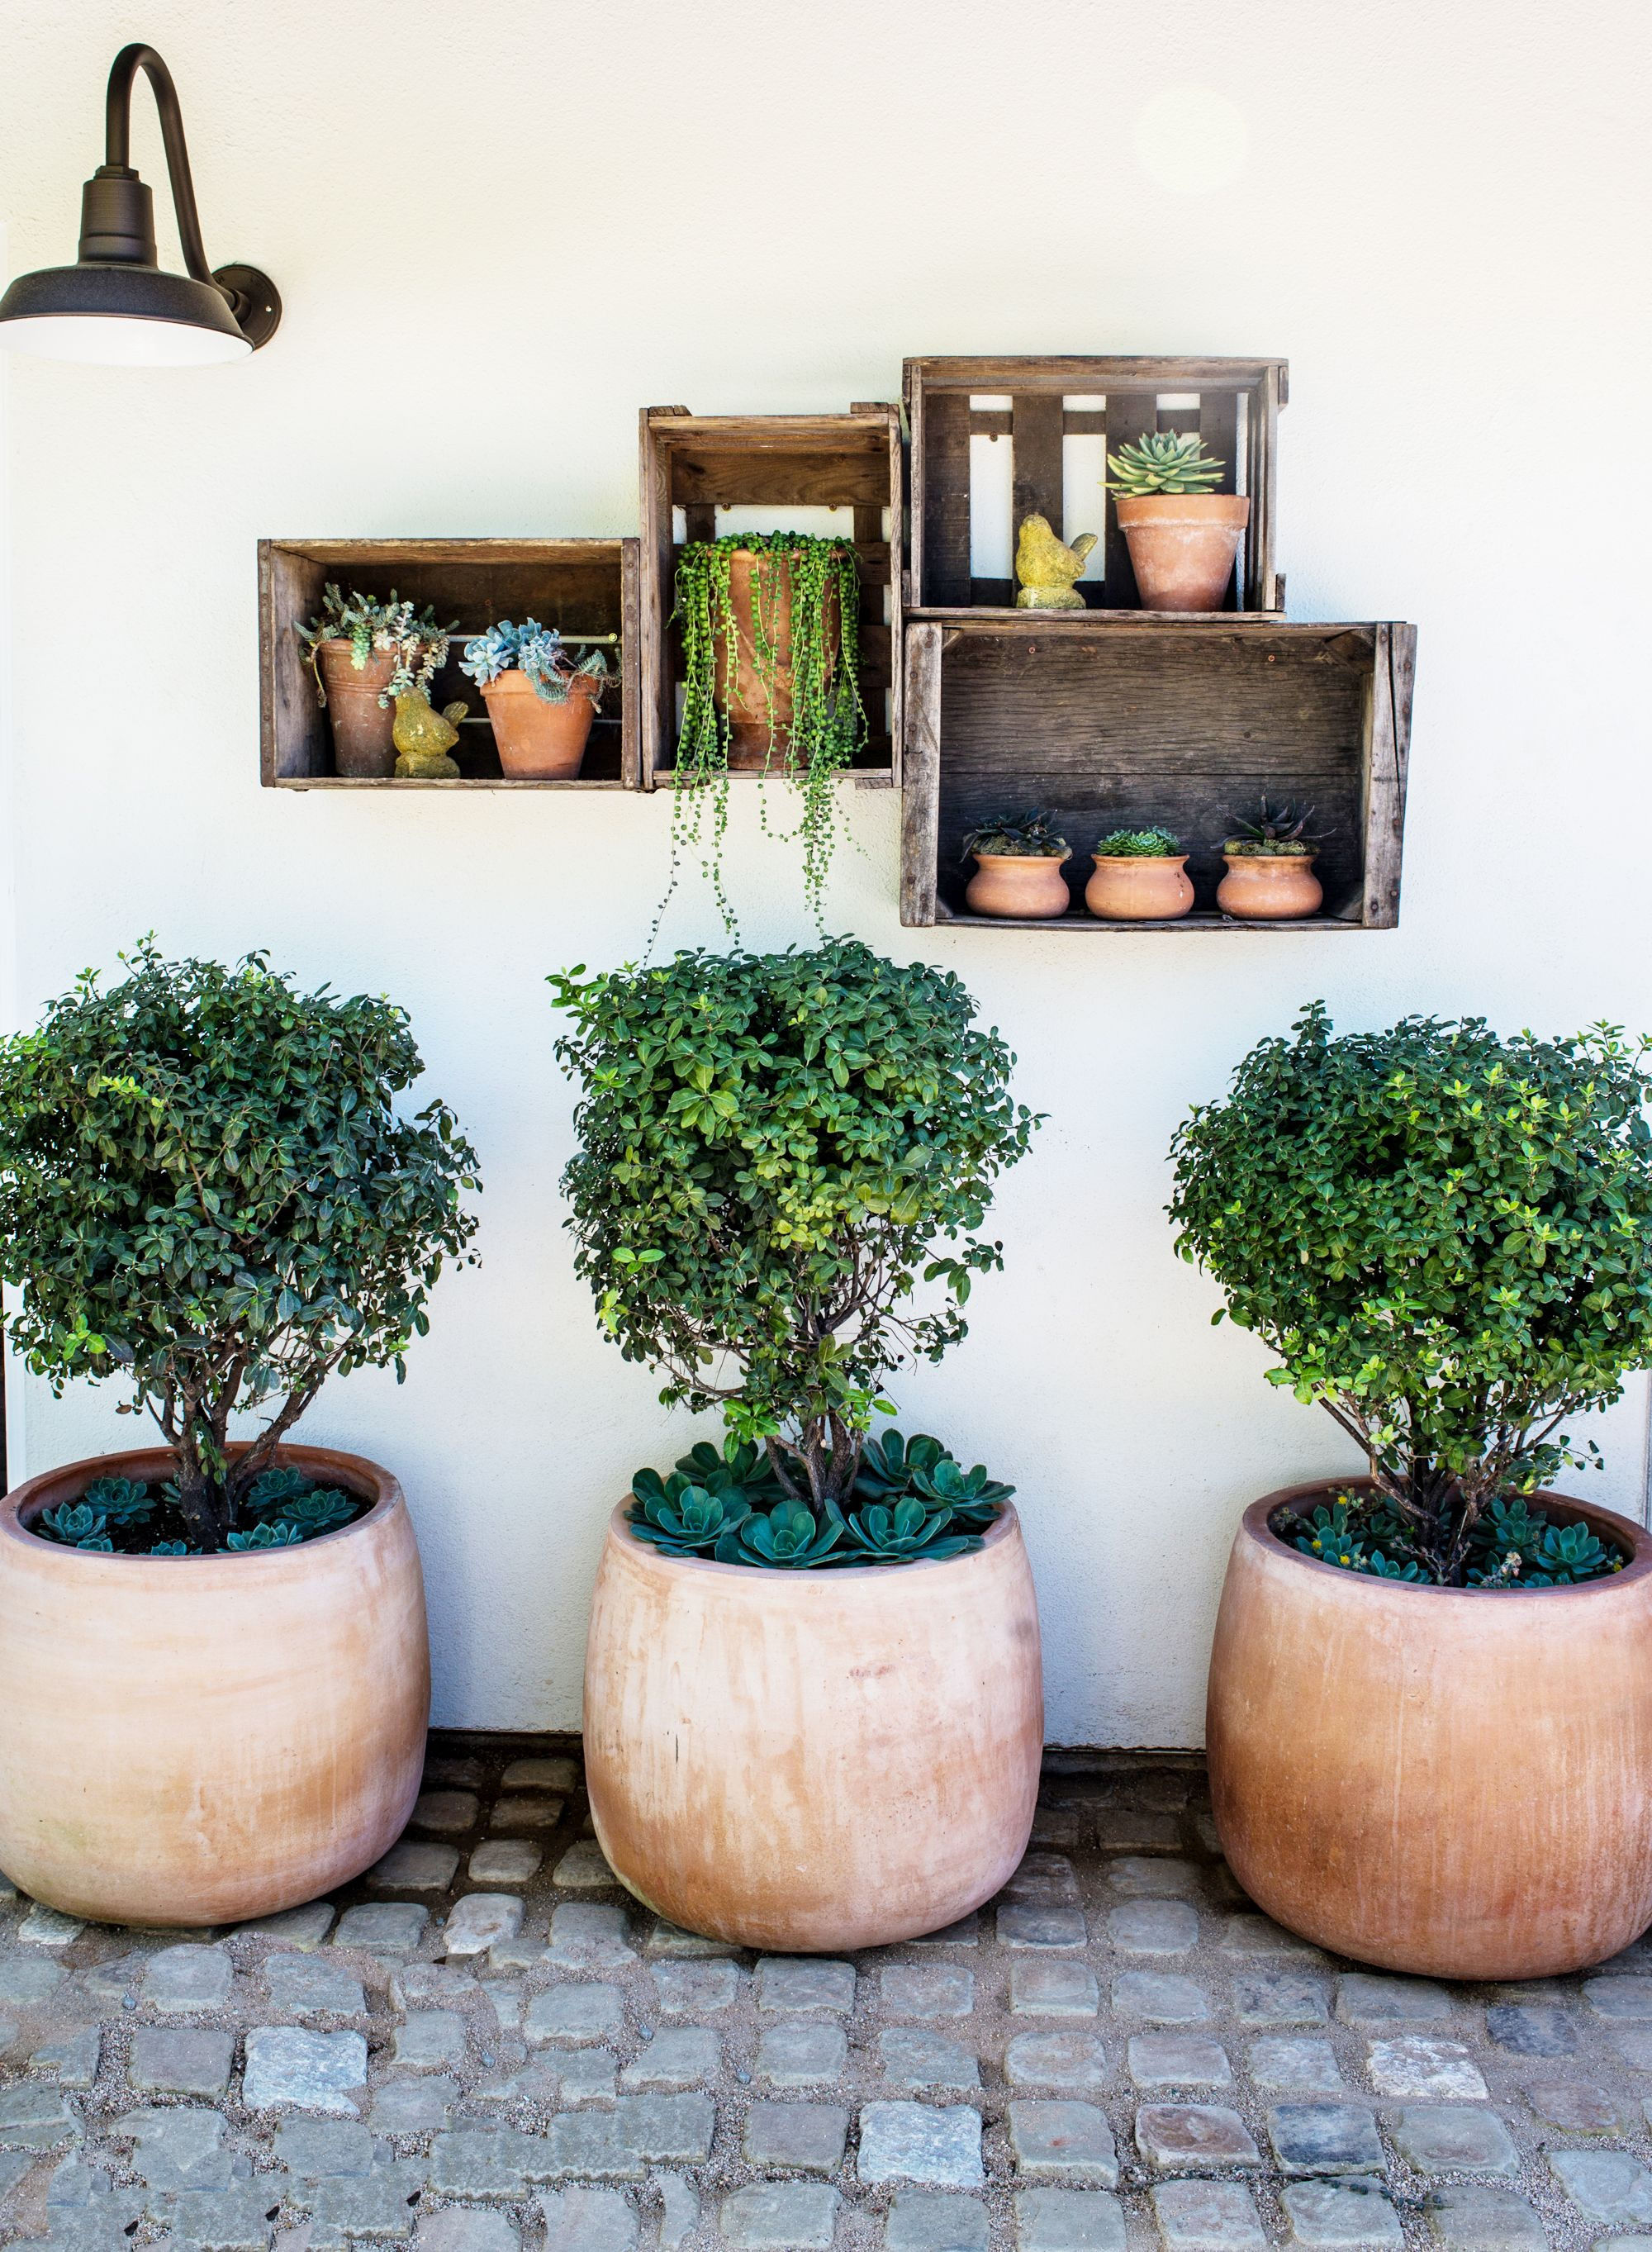 Small Potted Plants In Built In Shelves In Backyard And